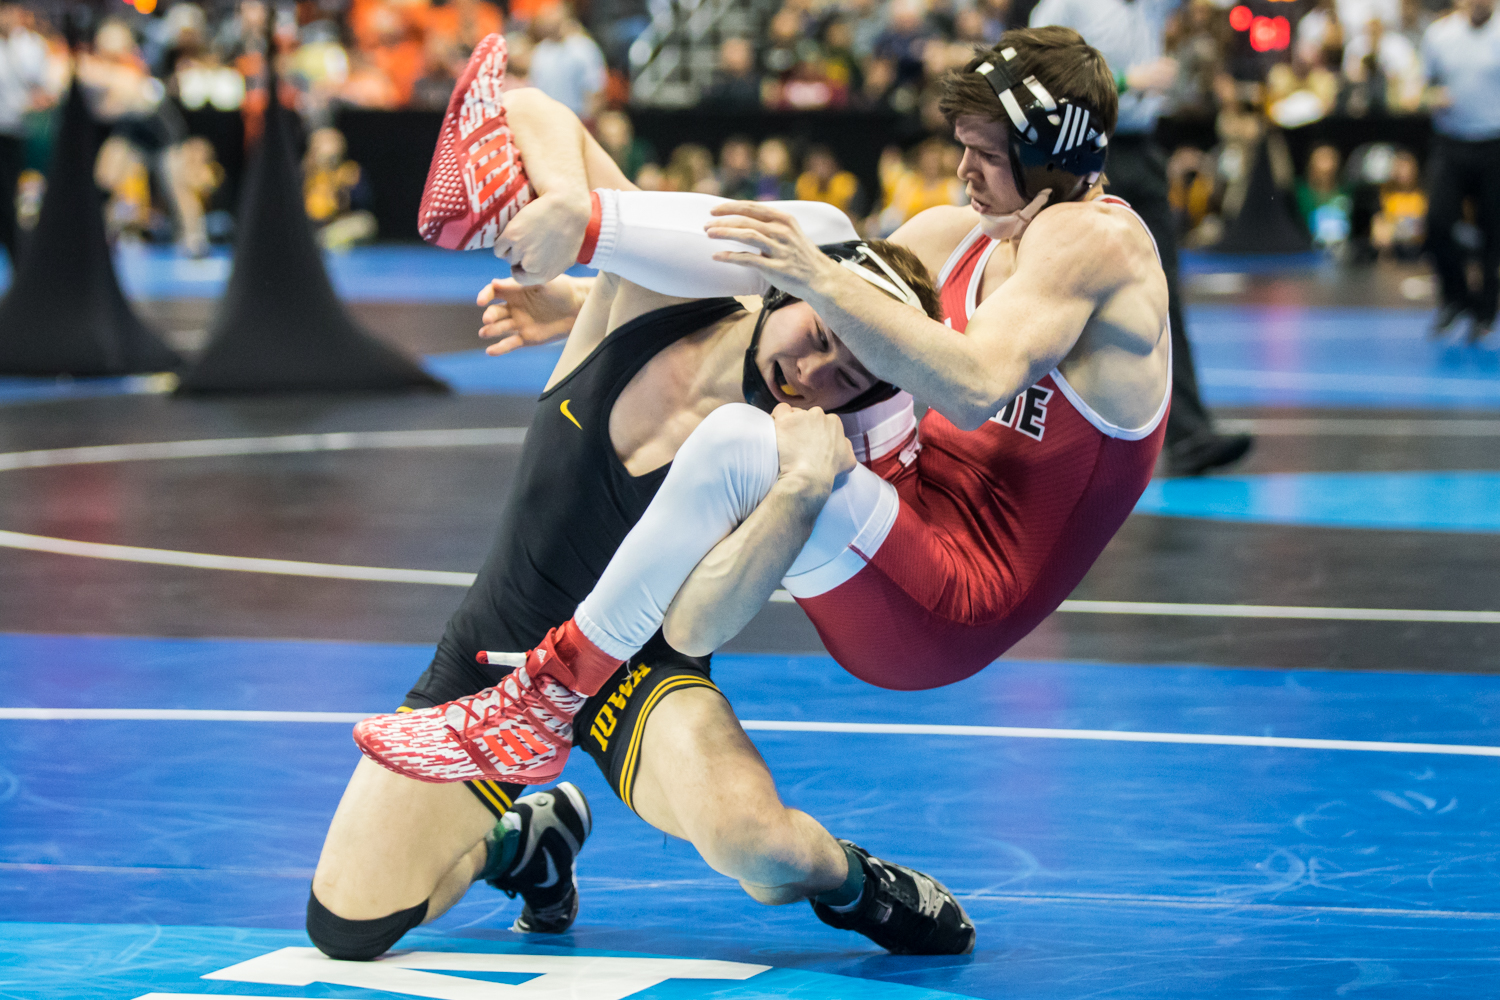 Iowa%E2%80%99s+125-pound+Spencer+Lee+wrestles+NC+State%E2%80%99s+Sean+Fausz+during+the+second+session+of+the+2019+NCAA+D1+Wrestling+Championships+at+PPG+Paints+Arena+in+Pittsburgh%2C+PA+on+Thursday%2C+March+21%2C+2019.+Lee+won+by+major+decision%2C+10-1.